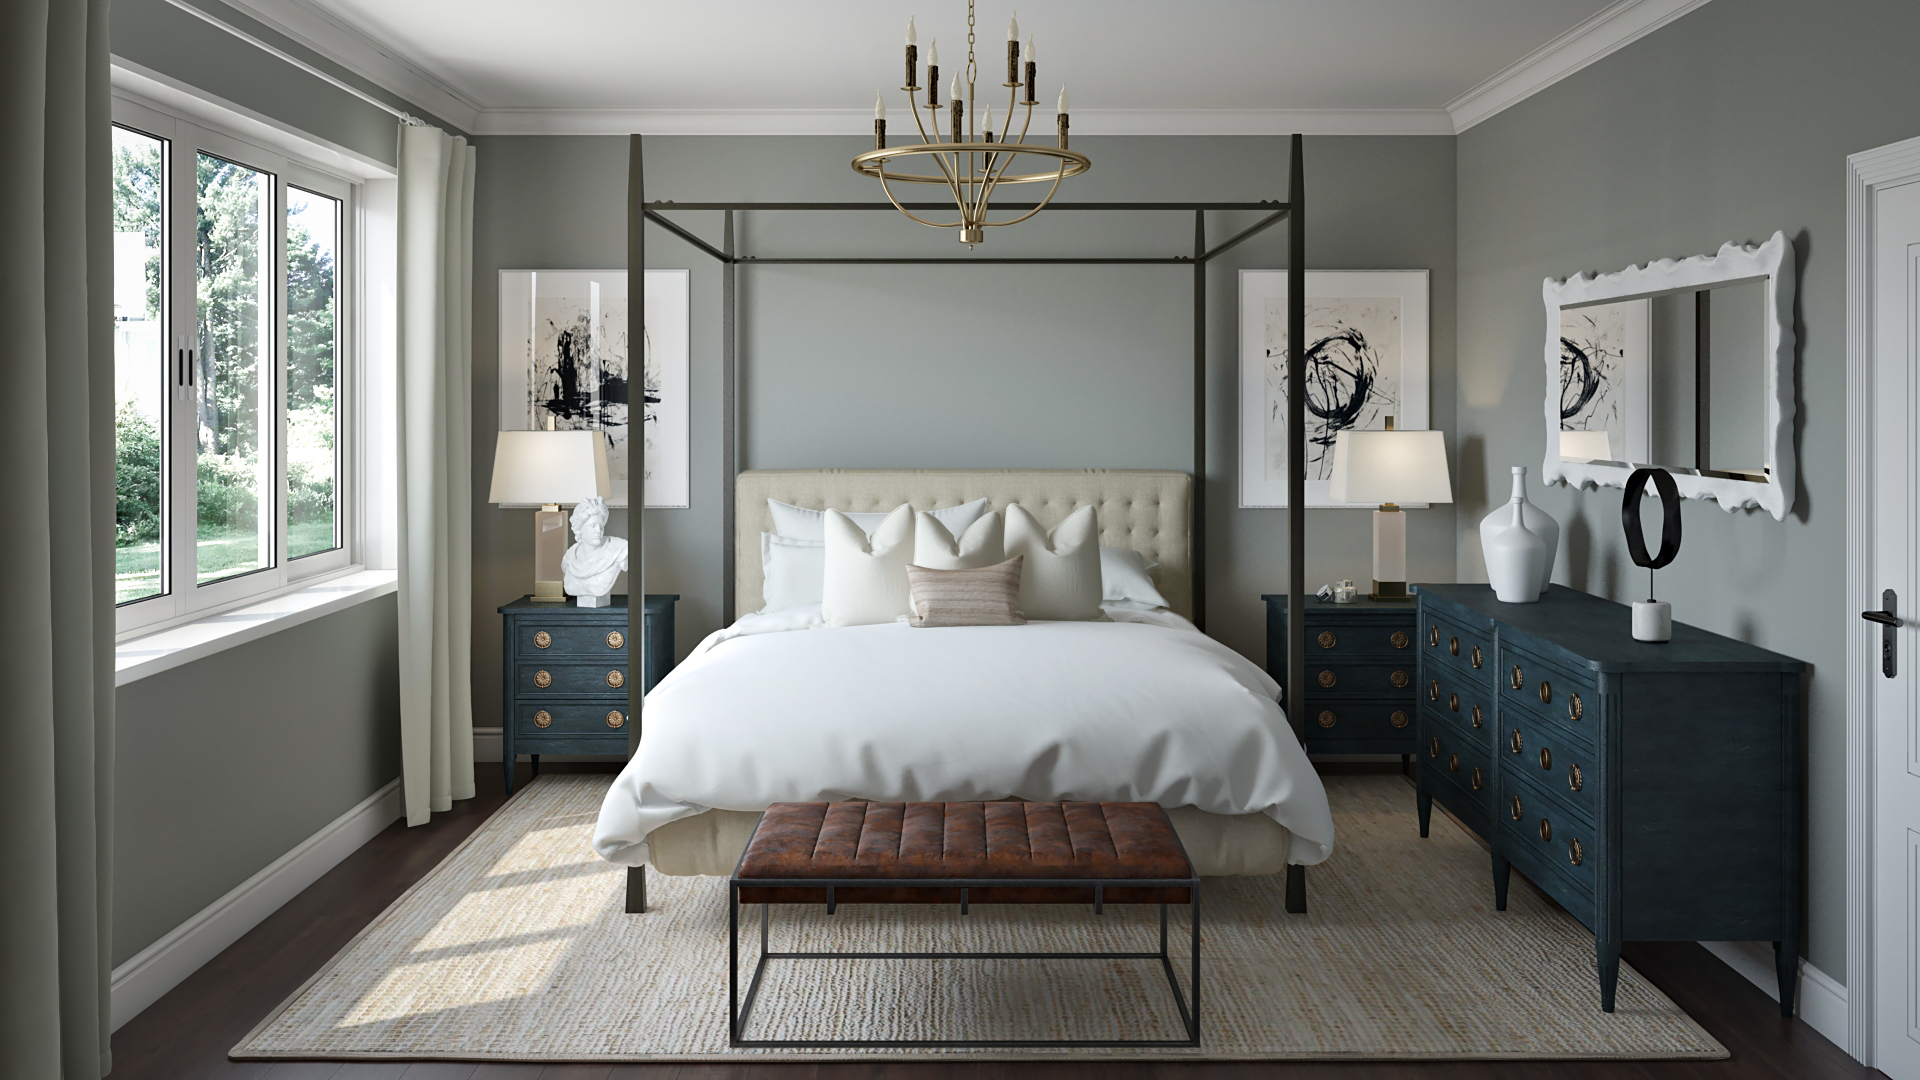 Traditional, Transitional Bedroom Design by Havenly Interior ...